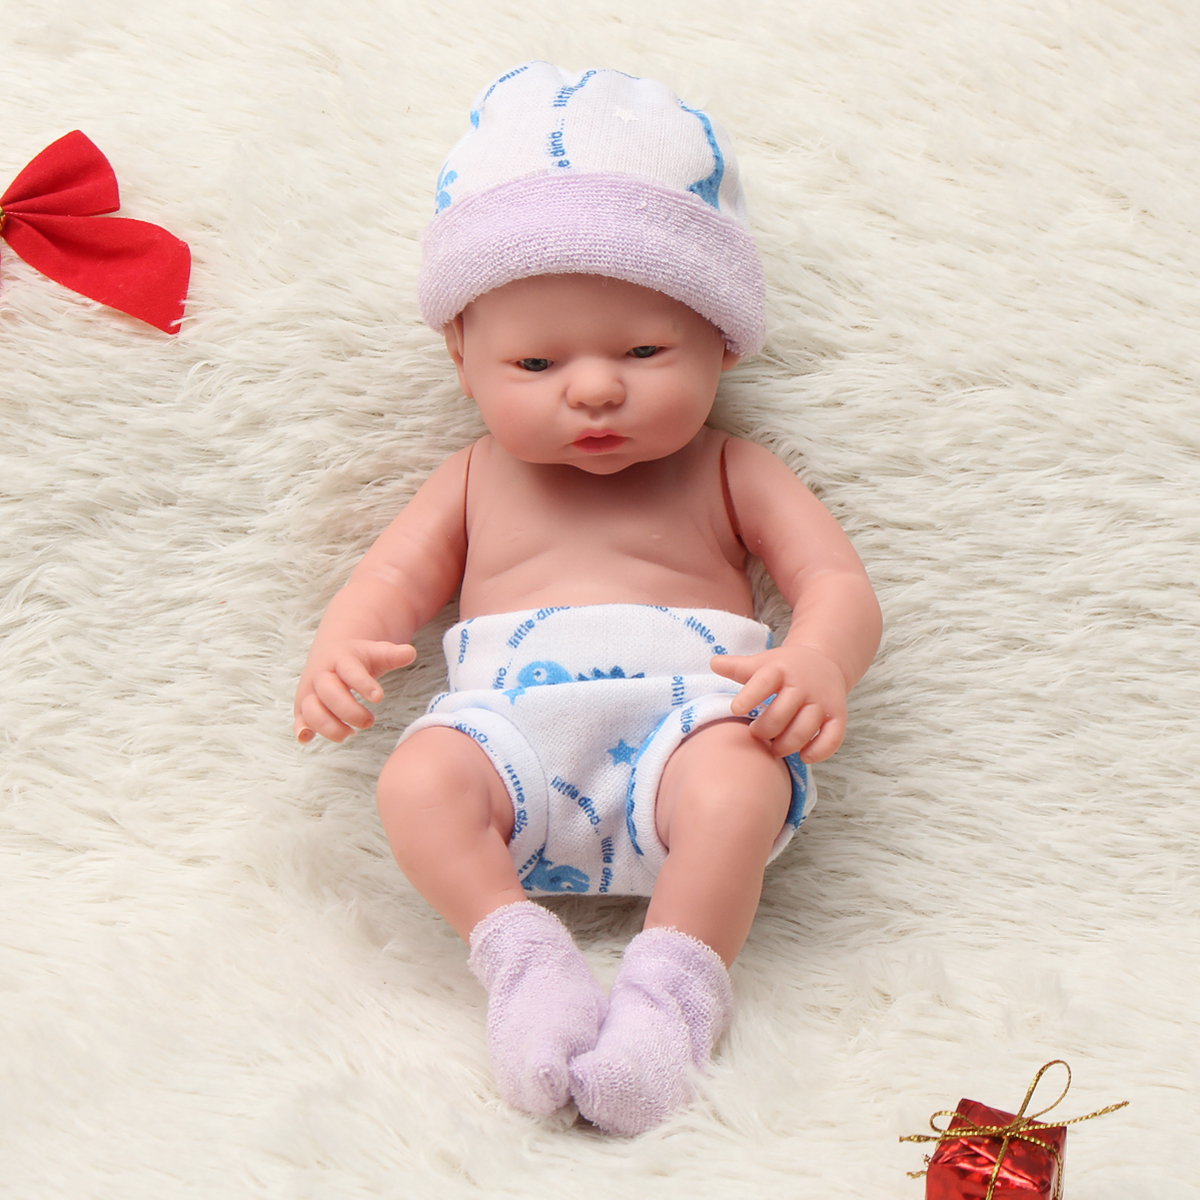 Newborn-Baby-Doll-Gift-Toy-Soft-Vinyl-Silicone-Lifelike-Newborn-KidsToddler-Girl